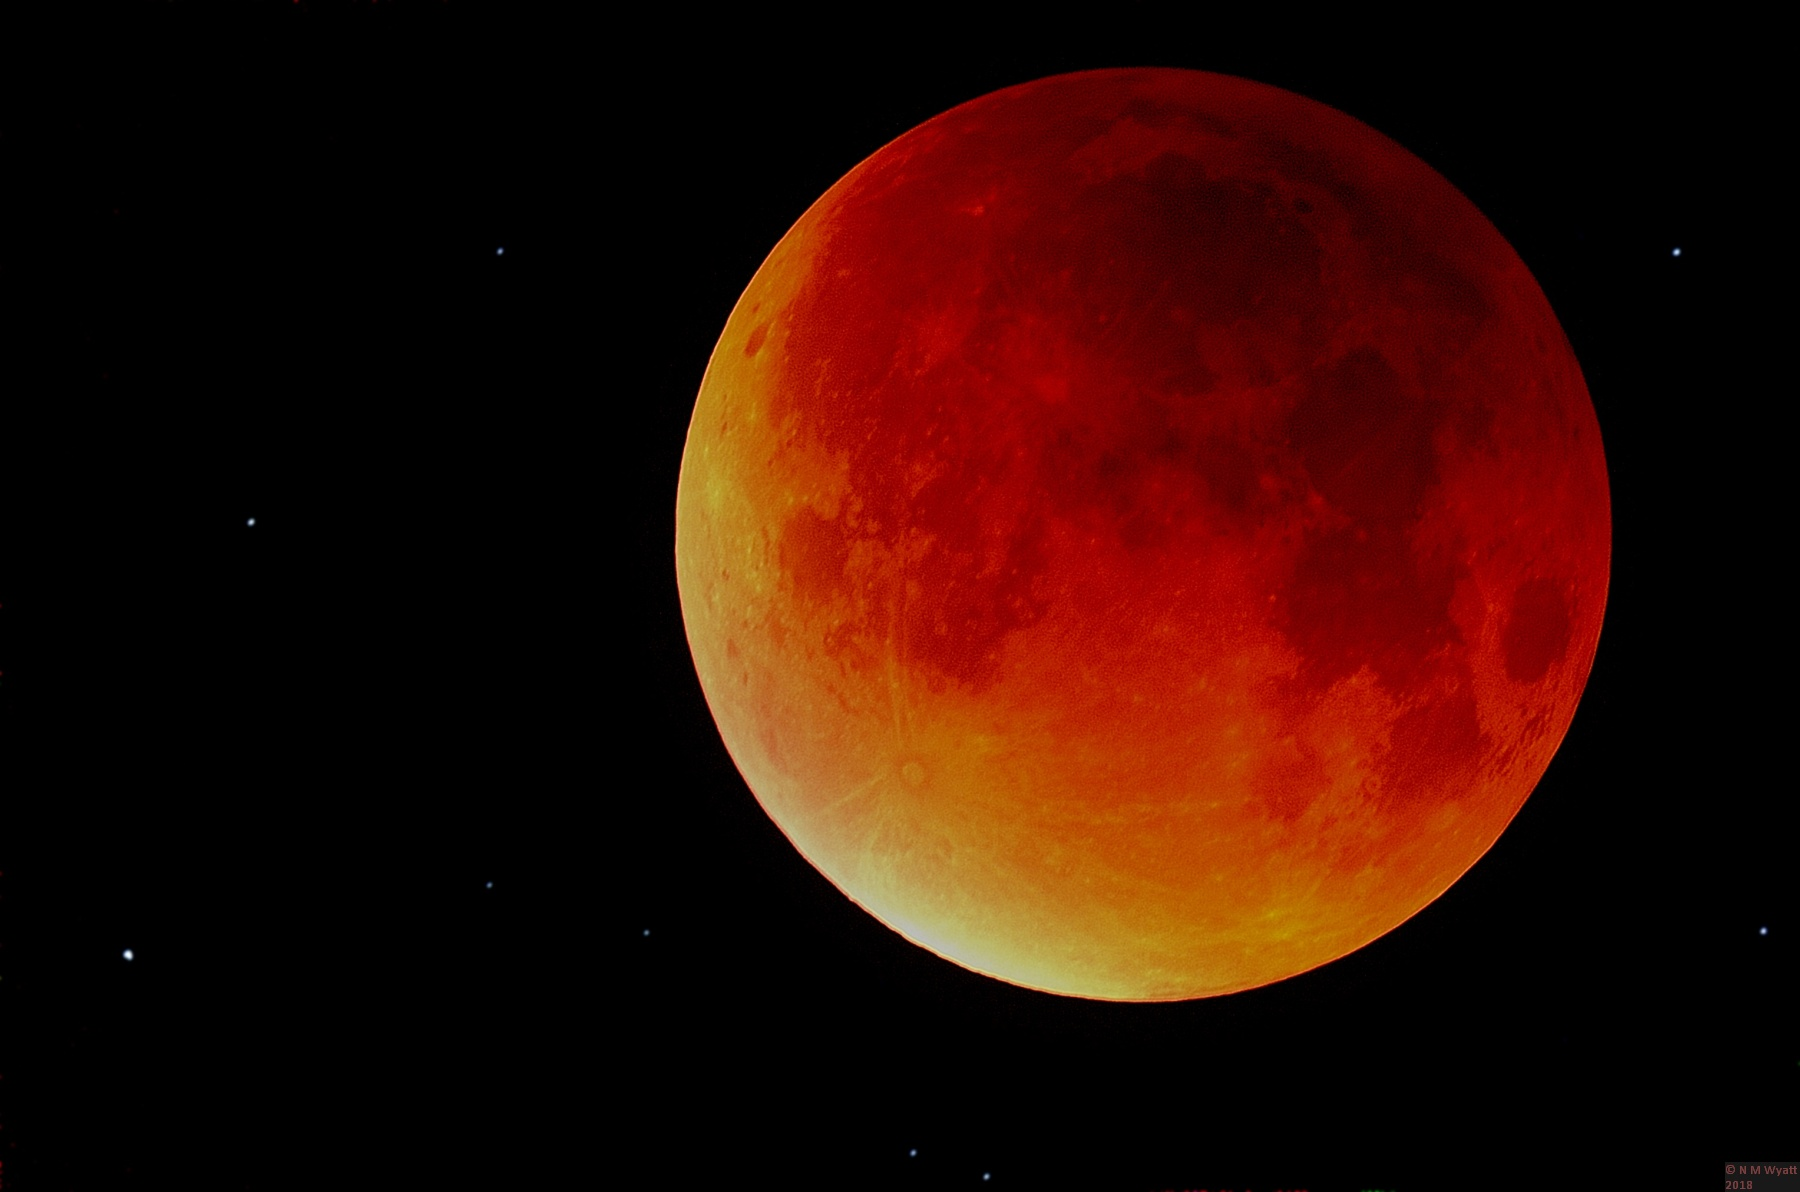 Probably the finest picture of Lunar Eclipse 28 September 2015 on the internet